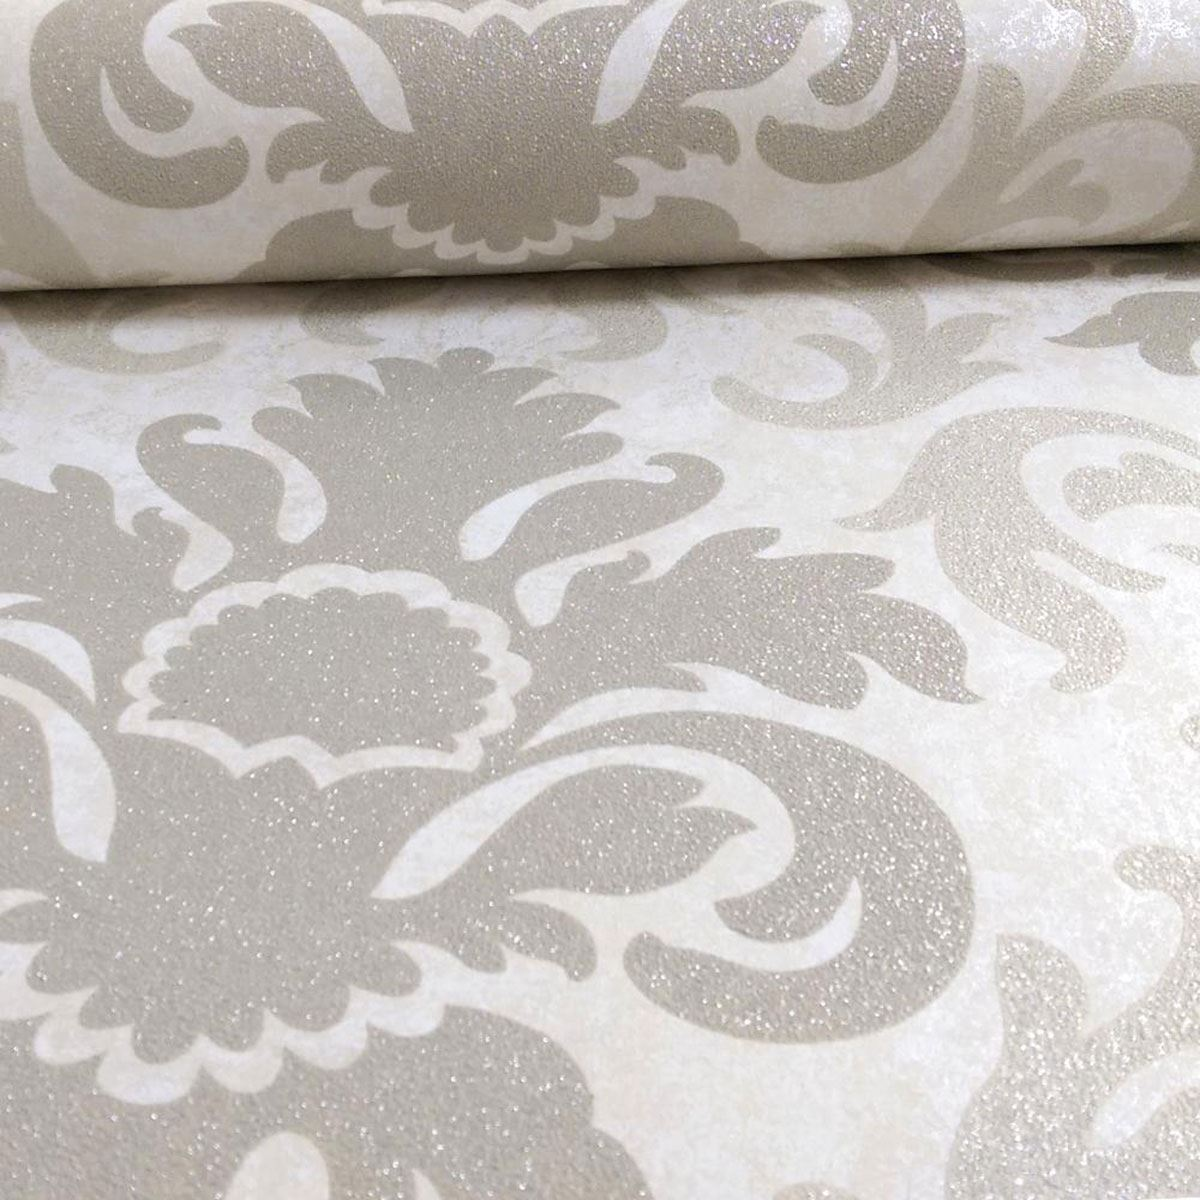 Silver Glitter Wallpaper For Bedroom Pamps Carat Damask Gold And Beige Glitter Wallpaper 10m Bedroom